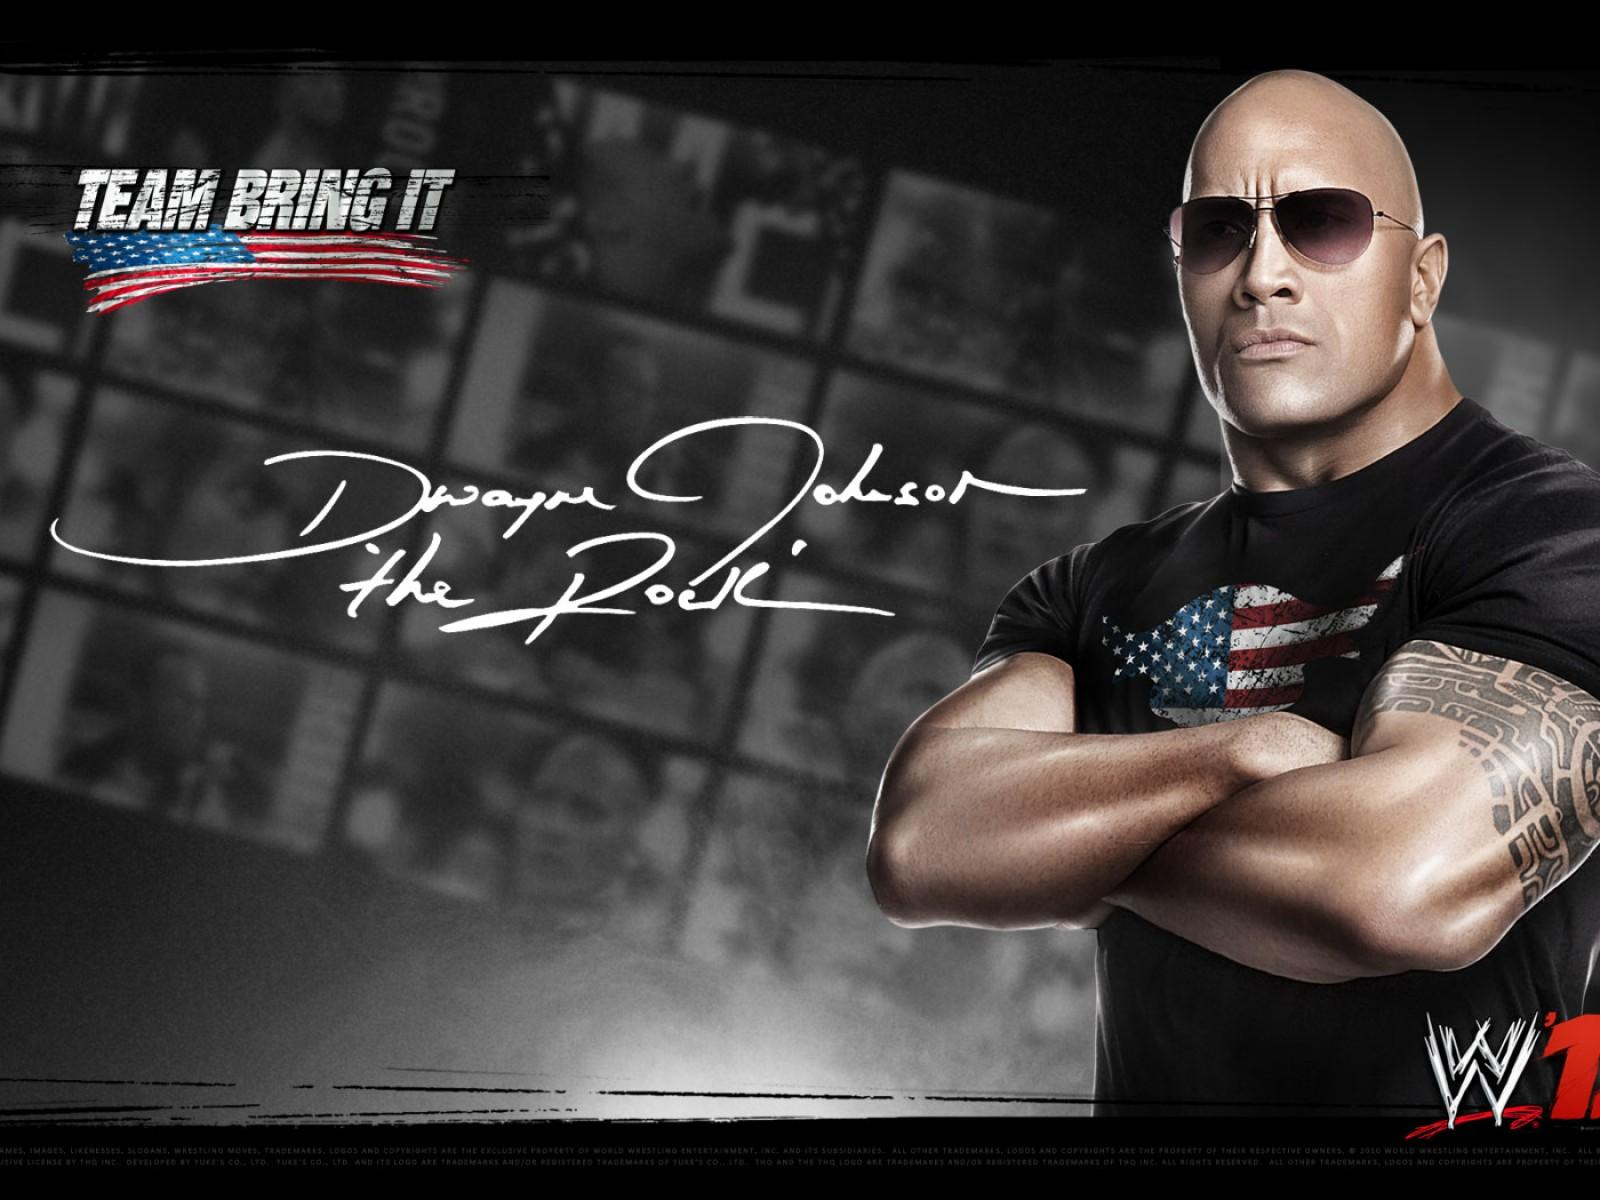 The Rock Wallpapers HD Backgrounds, Image, Pics, Photos Free